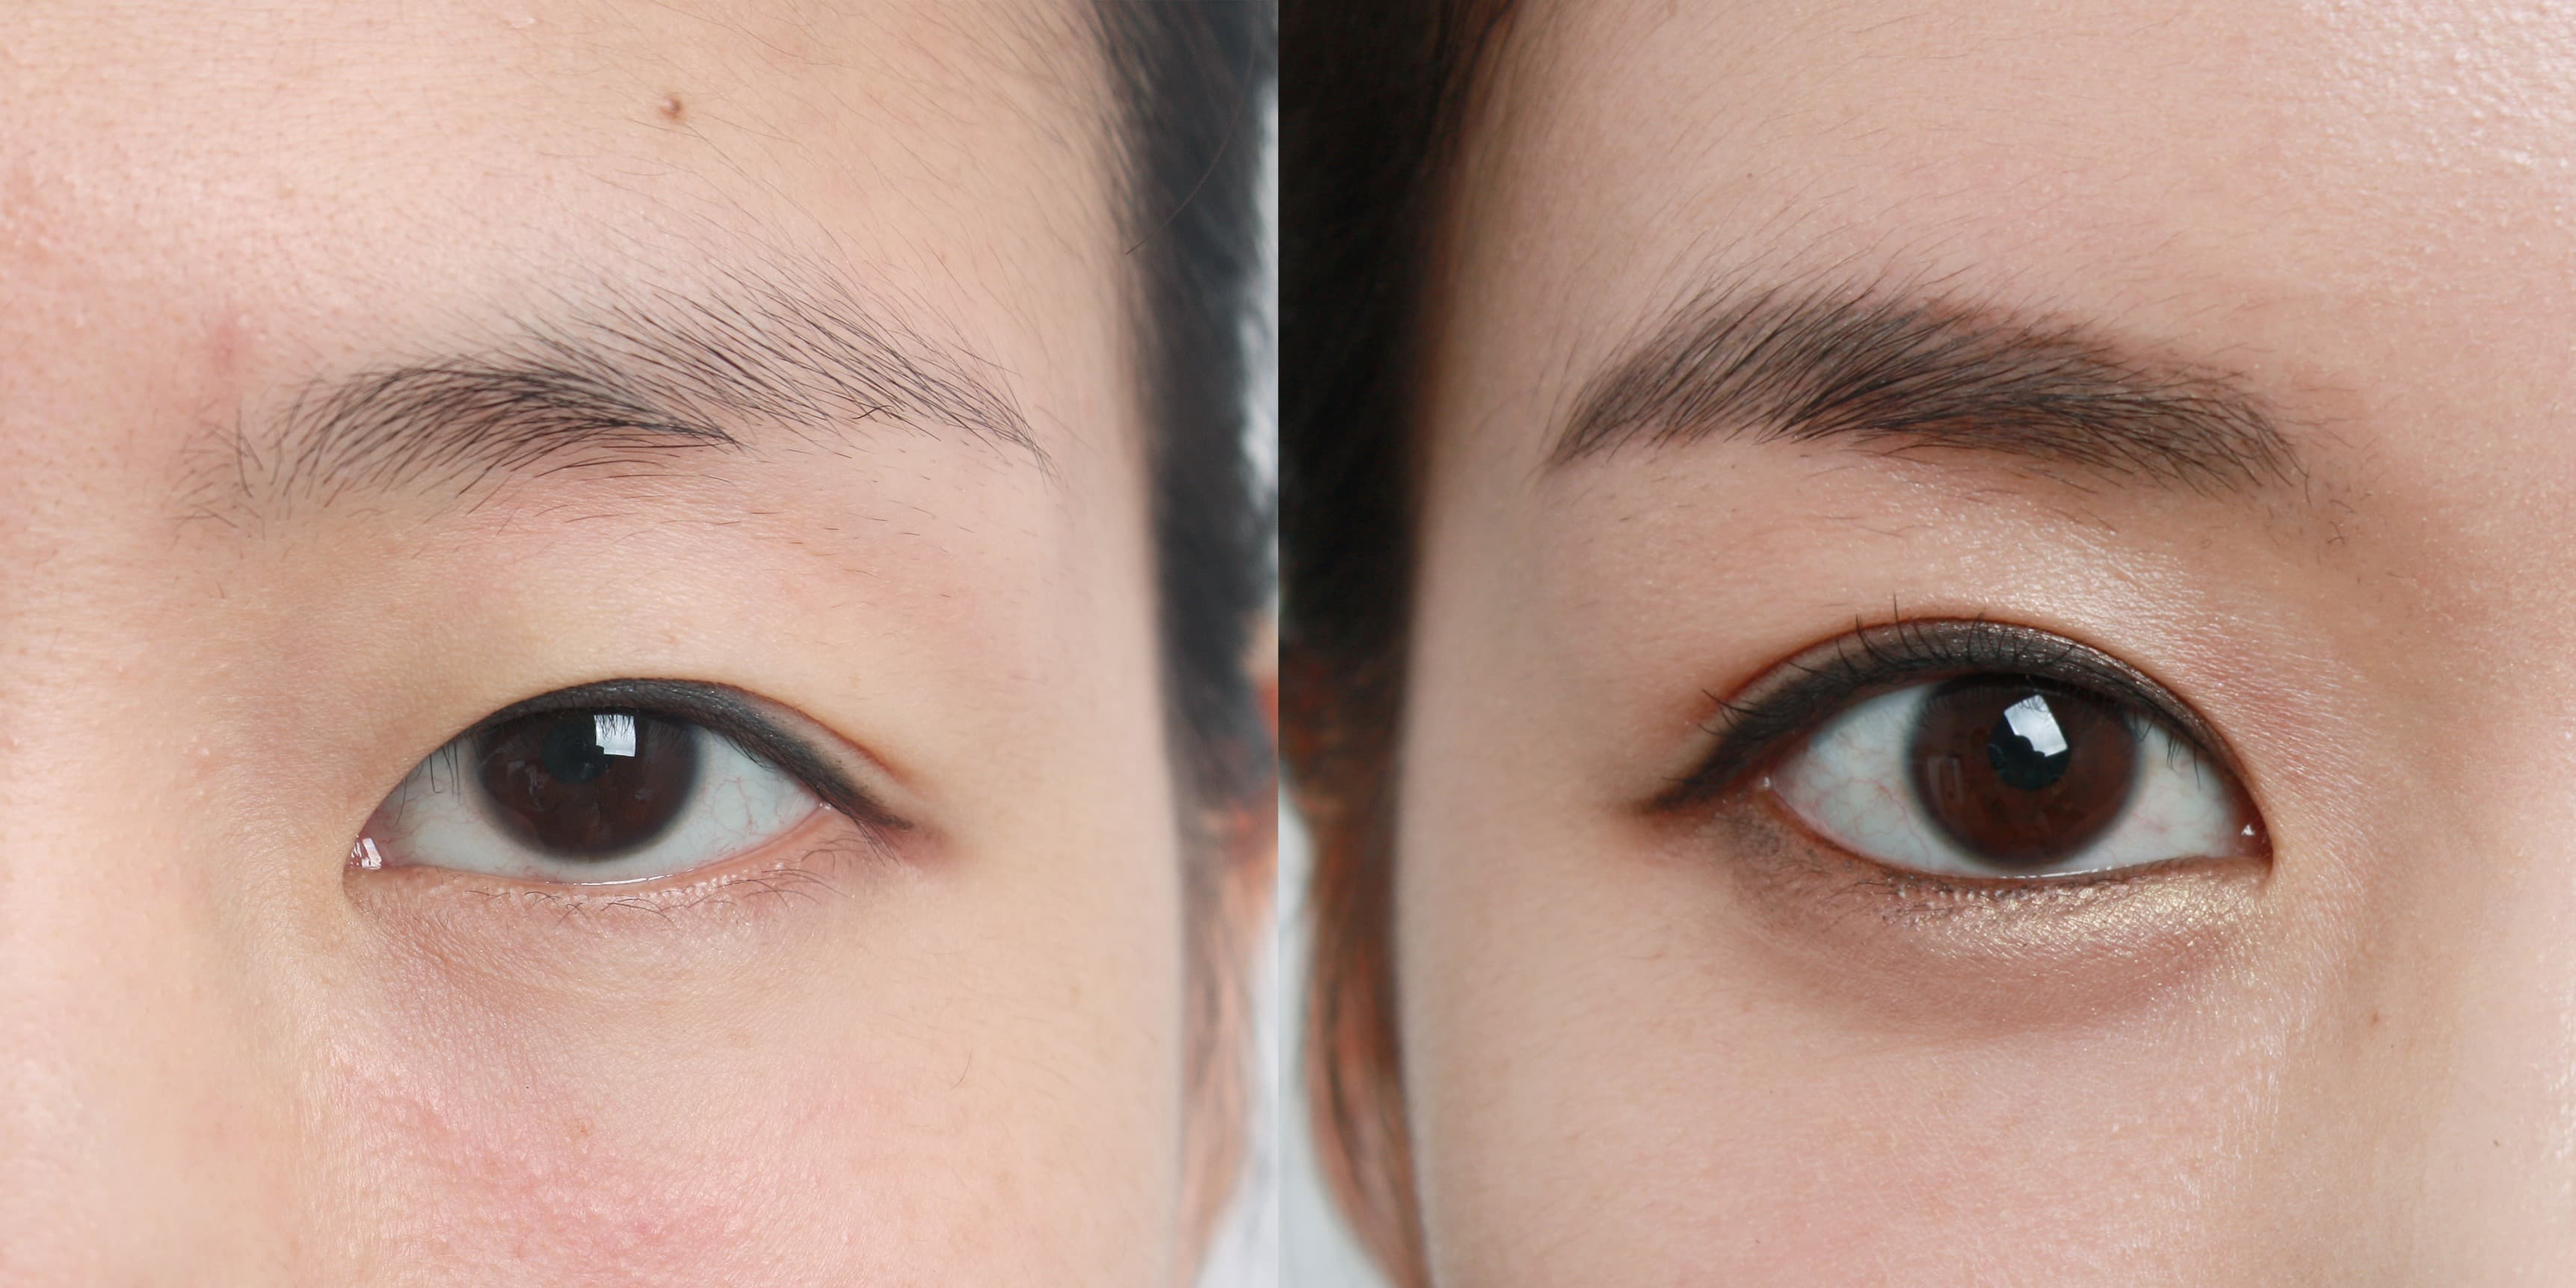 Before And After Eye Plastic Surgery Korea photo - 1